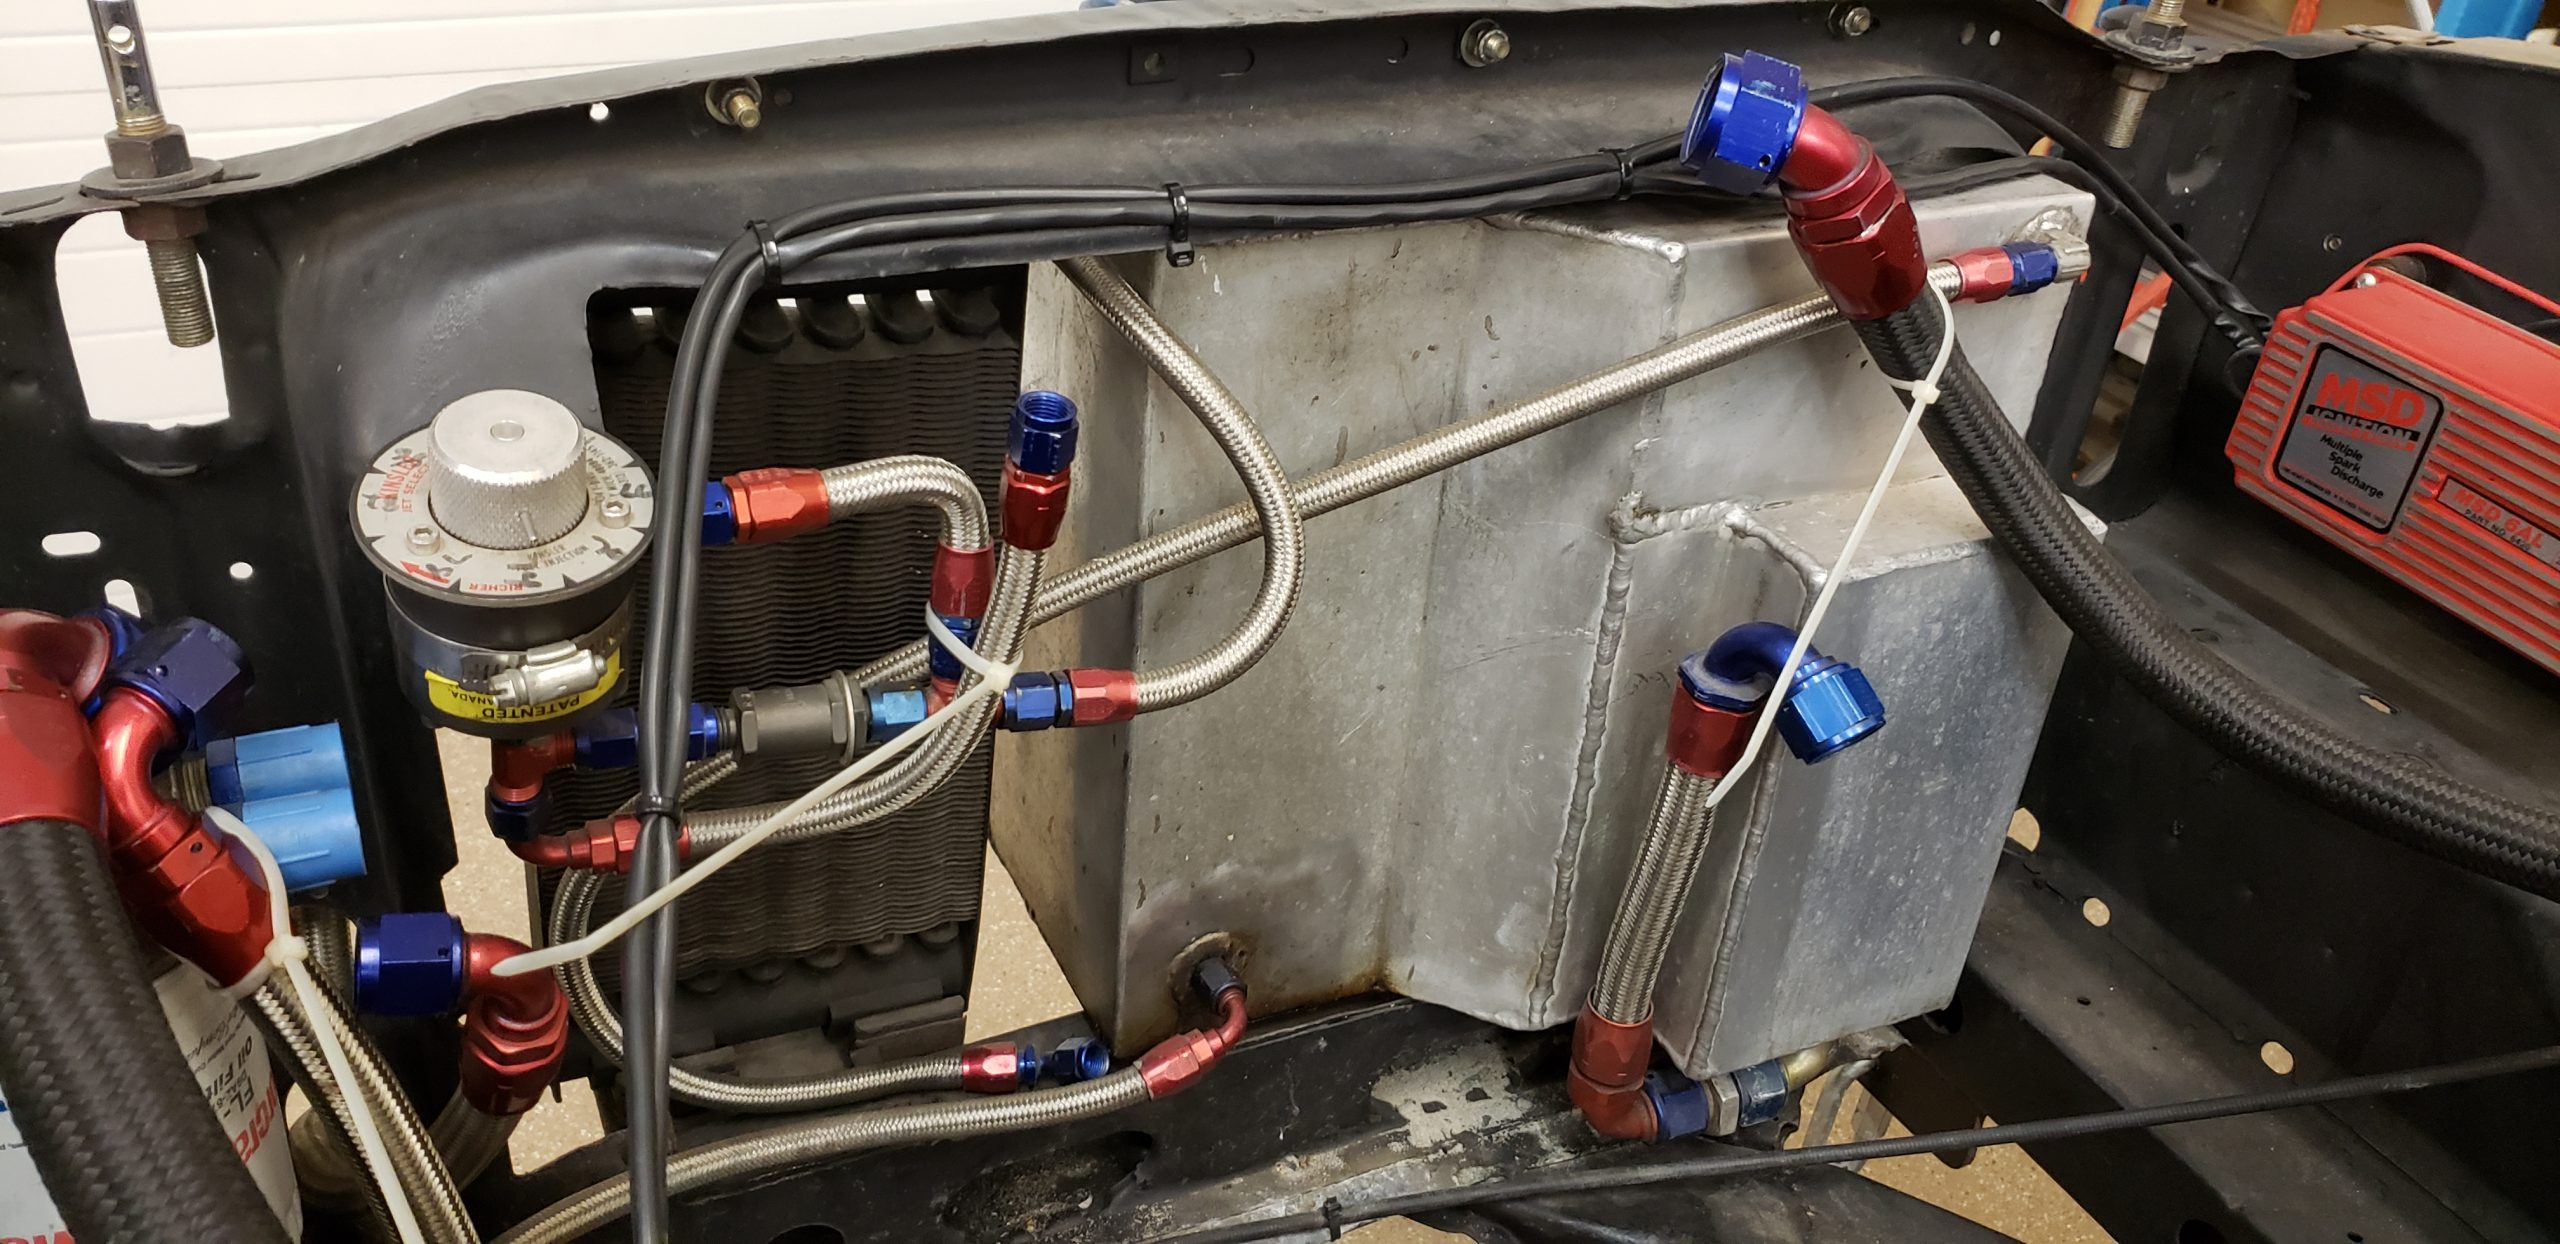 Lawman Boss 429 Ford Mustang restoration engine bay hoses close